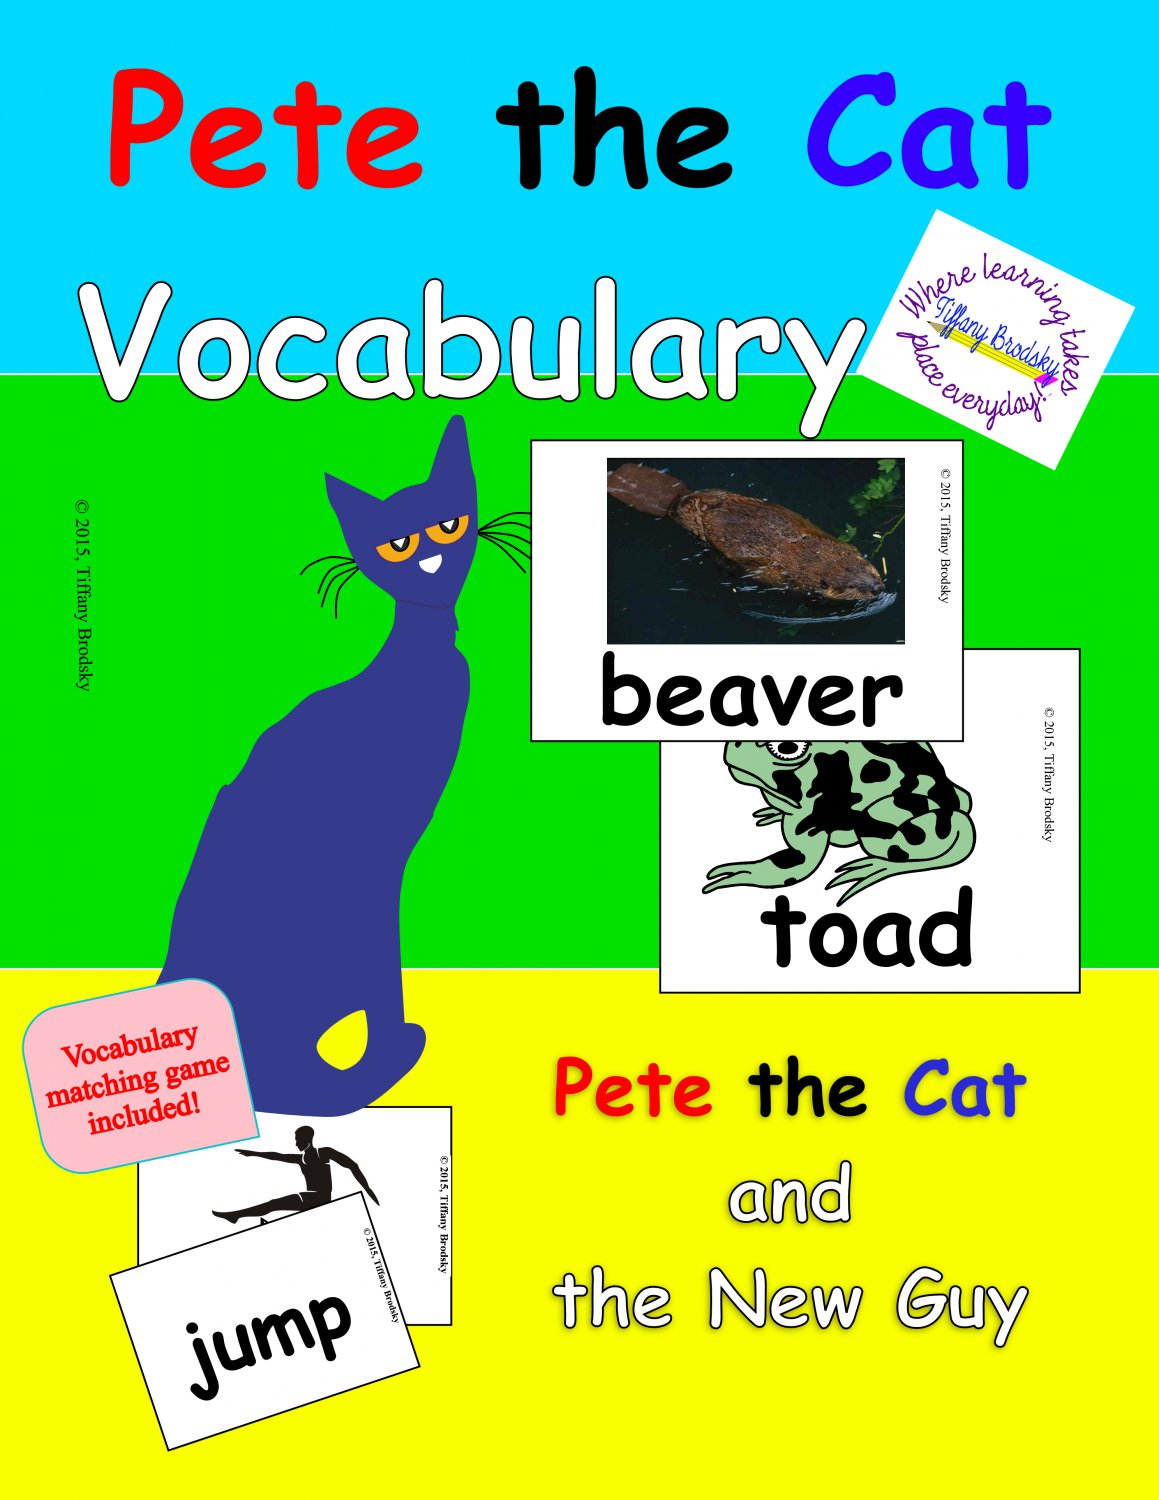 Pete the Cat and the New Guy Vocabulary Cards in PDF